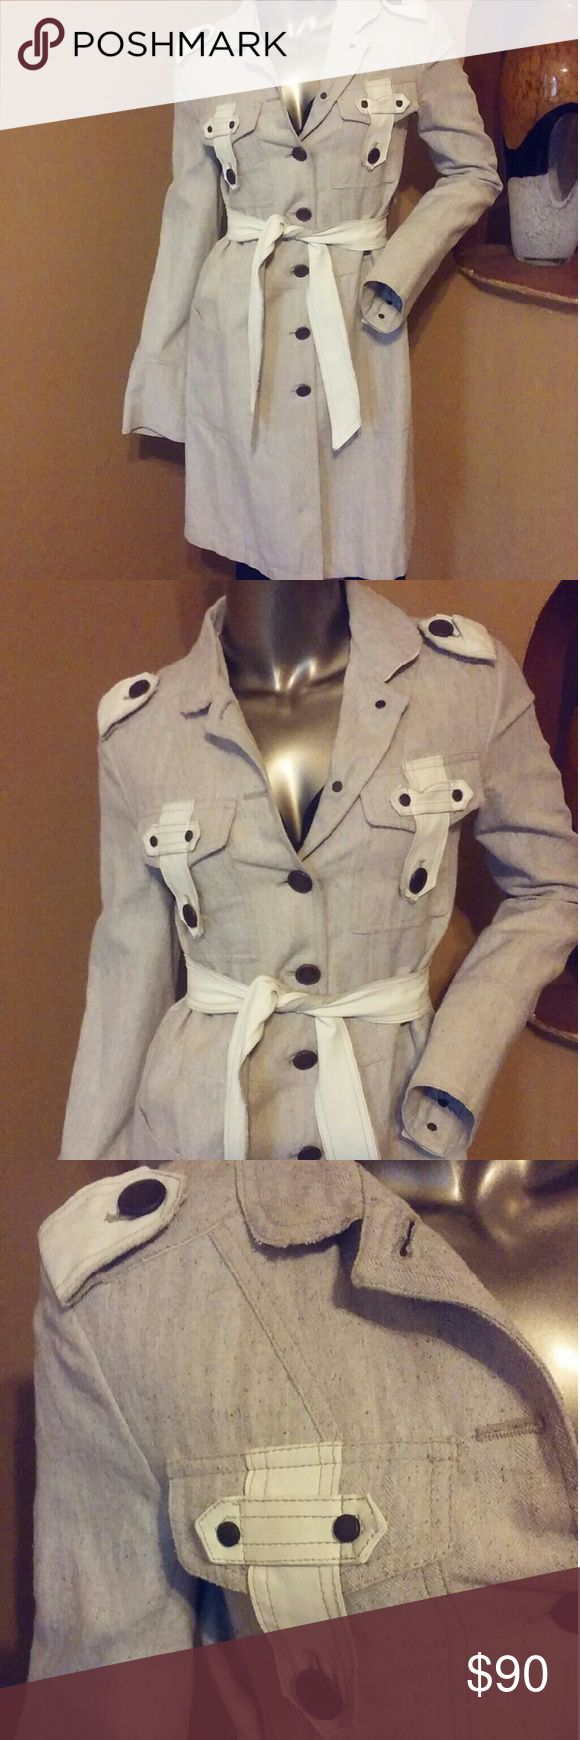 Patrizia Pepe trench coat Patrizia Pepe cream silk and linen belted coat with leather trim. Good condition. Patrizia Pepe Jackets & Coats Trench Coats